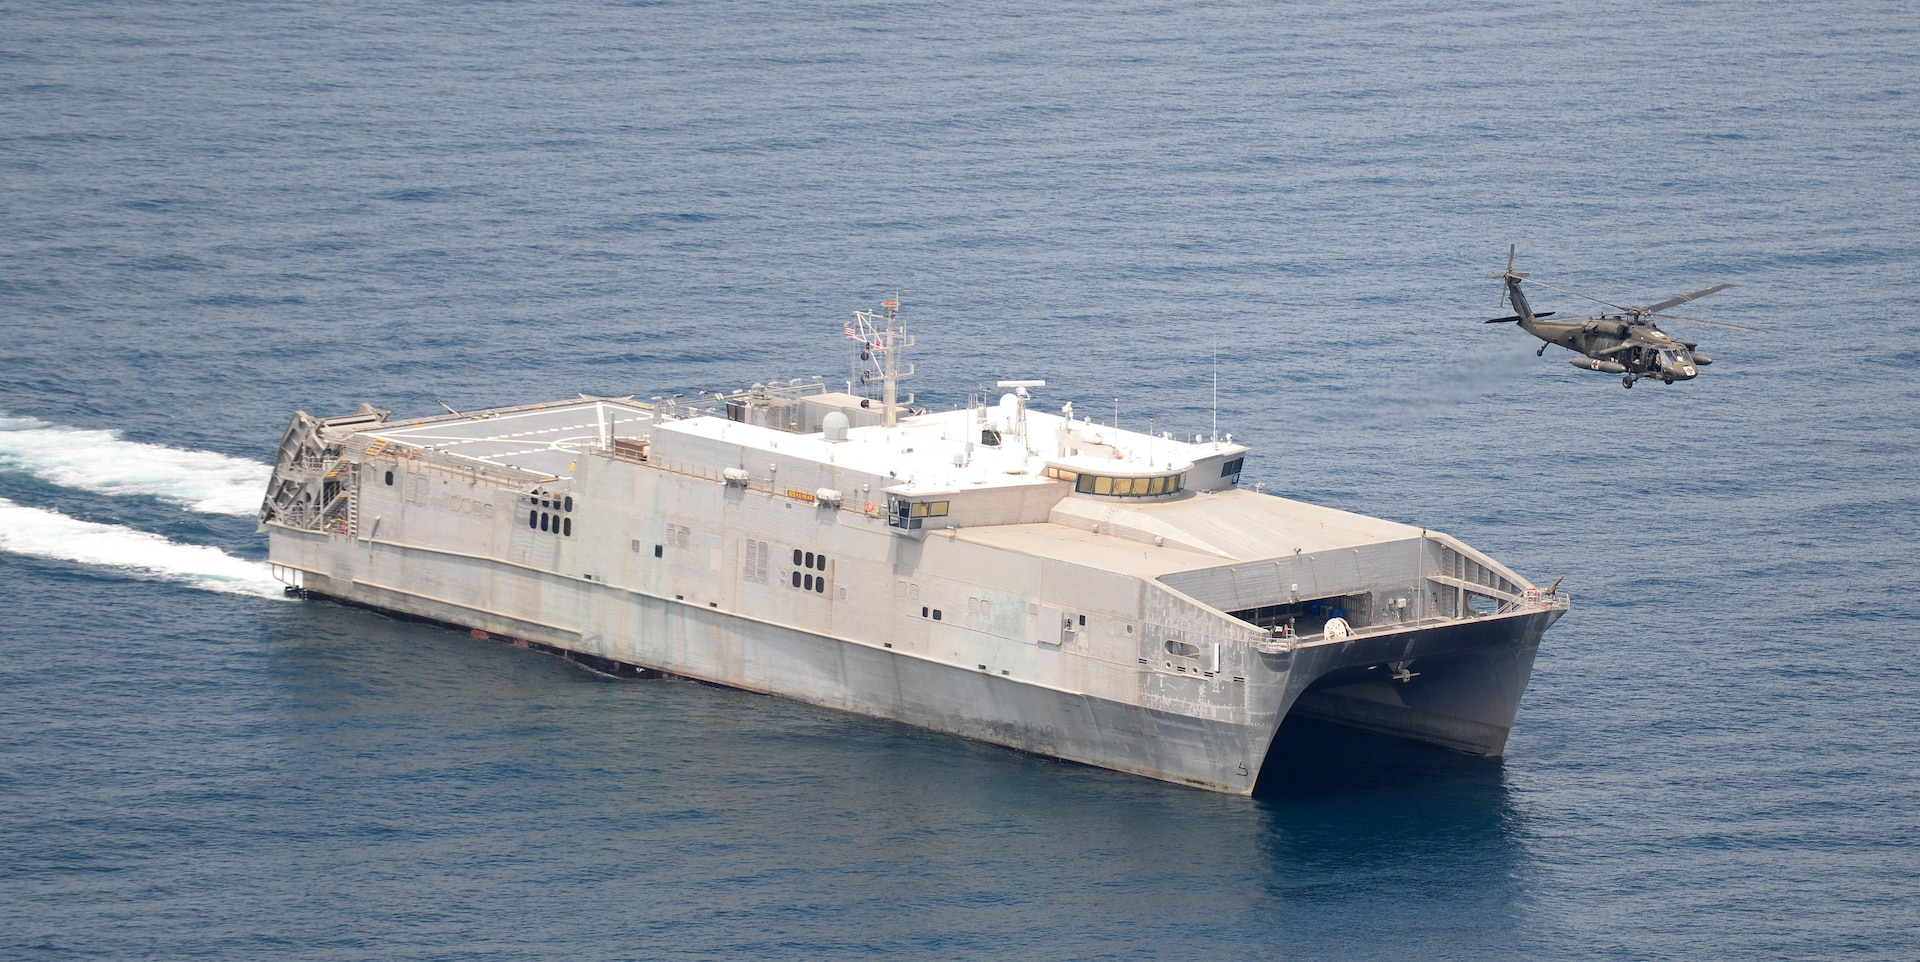 FILE PHOTO: USNS Spearhead (T-EPF 1) during UNITAS 2016 exercise last year in Panama. Spearhead, with embarked supporting detachments, is deploying to Guatemala, Honduras and Colombia for the Continuing Promise 2017 humanitarian mission. (U.S. Navy Photo by Mass Communication Specialist 1st Class Jacob Sippel)